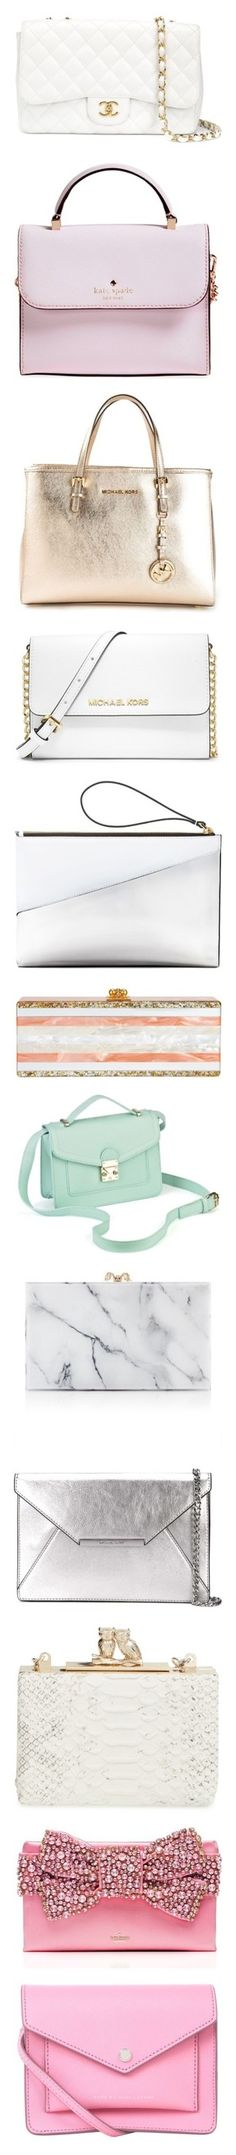 """Handbag Collection"" by littlemisscupcake88 ❤ liked on Polyvore featuring bags, handbags, shoulder bags, white, quilted leather shoulder bag, chanel shoulder bag, vintage leather shoulder bag, leather purse, white purse and purses"